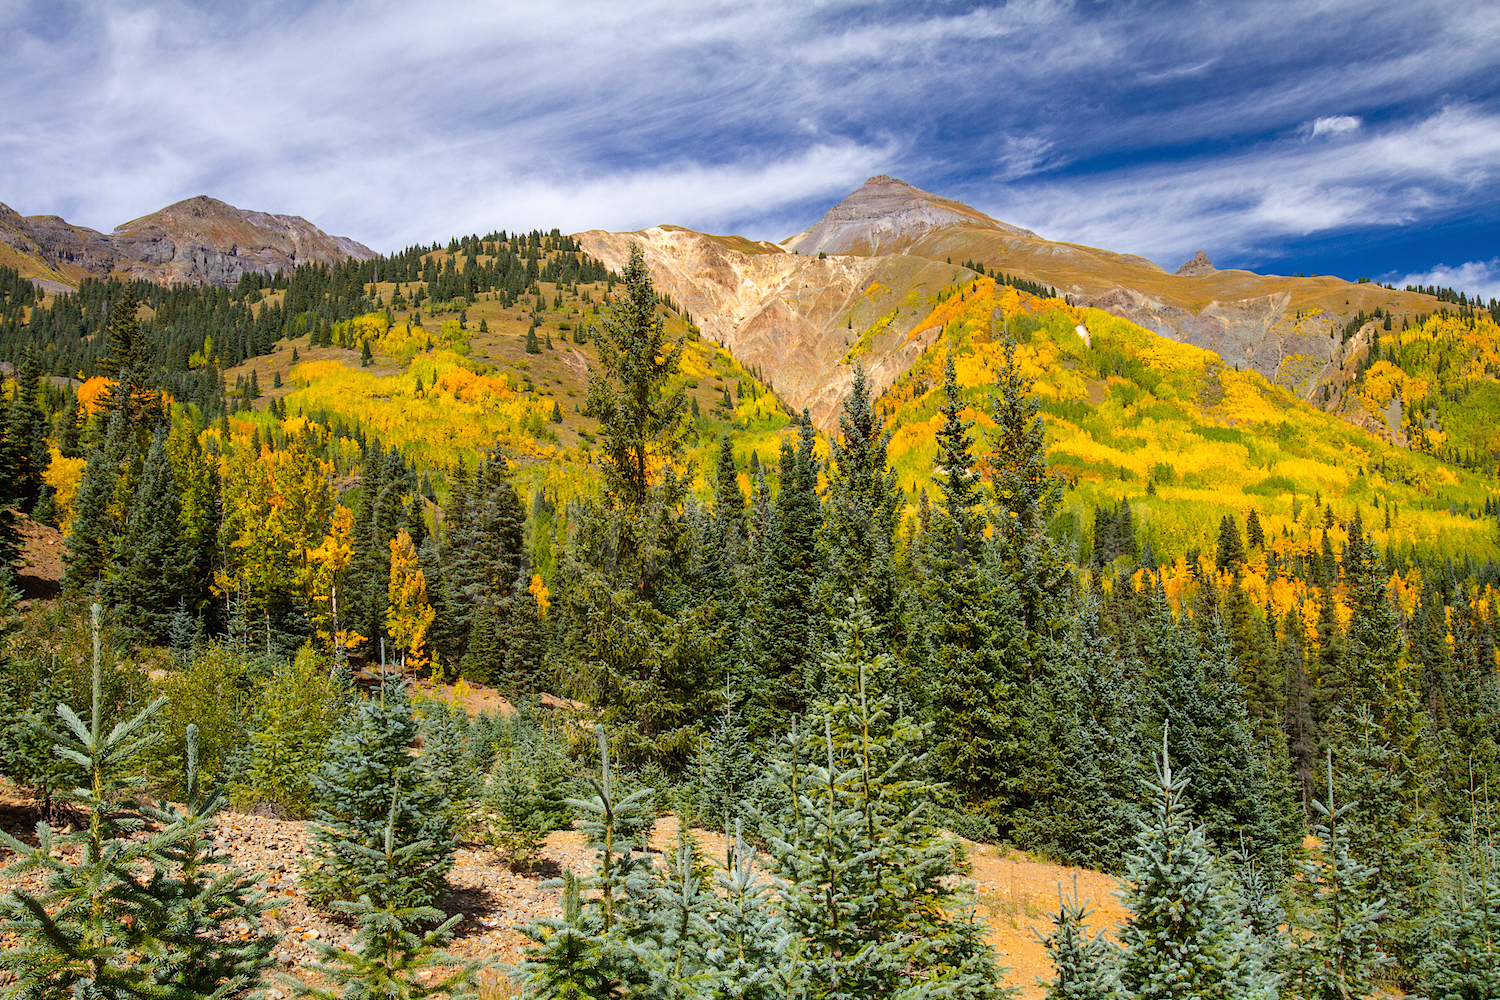 Red Mountain Fall Color, Image #9125